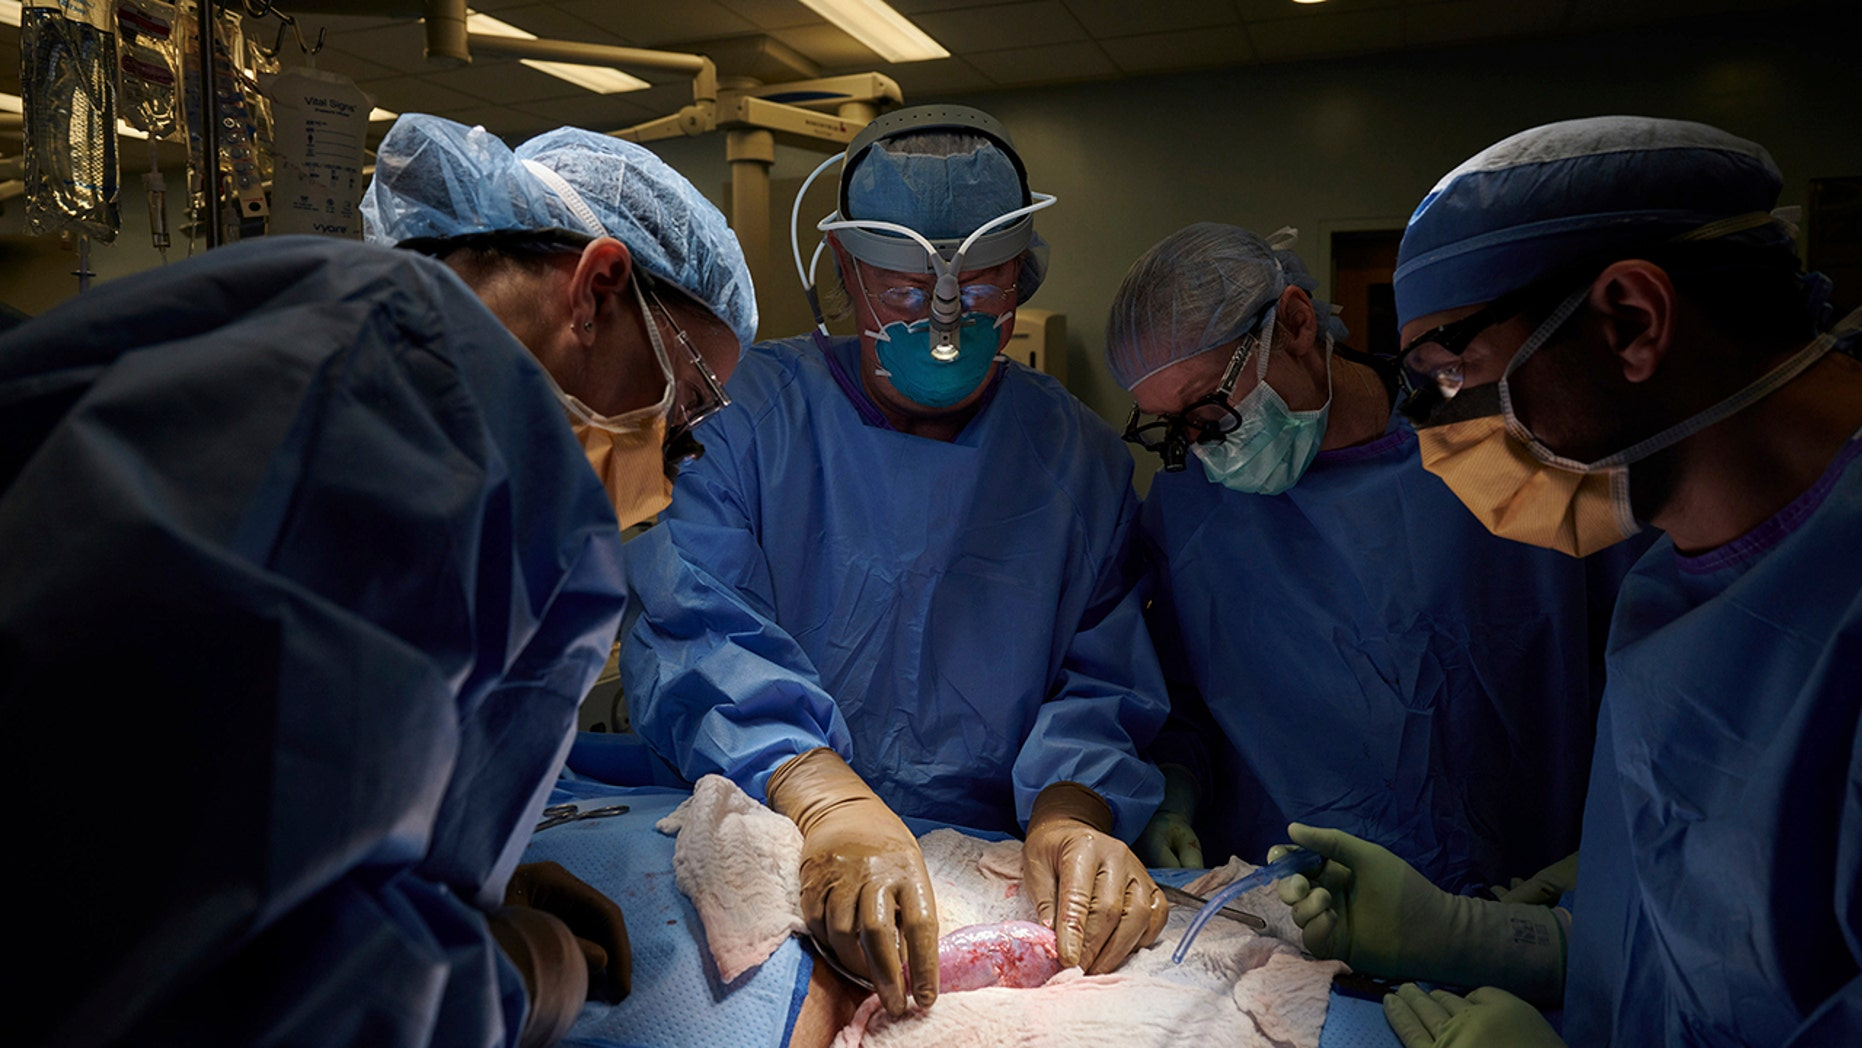 Pigs Kidney transplanted into adult female woman